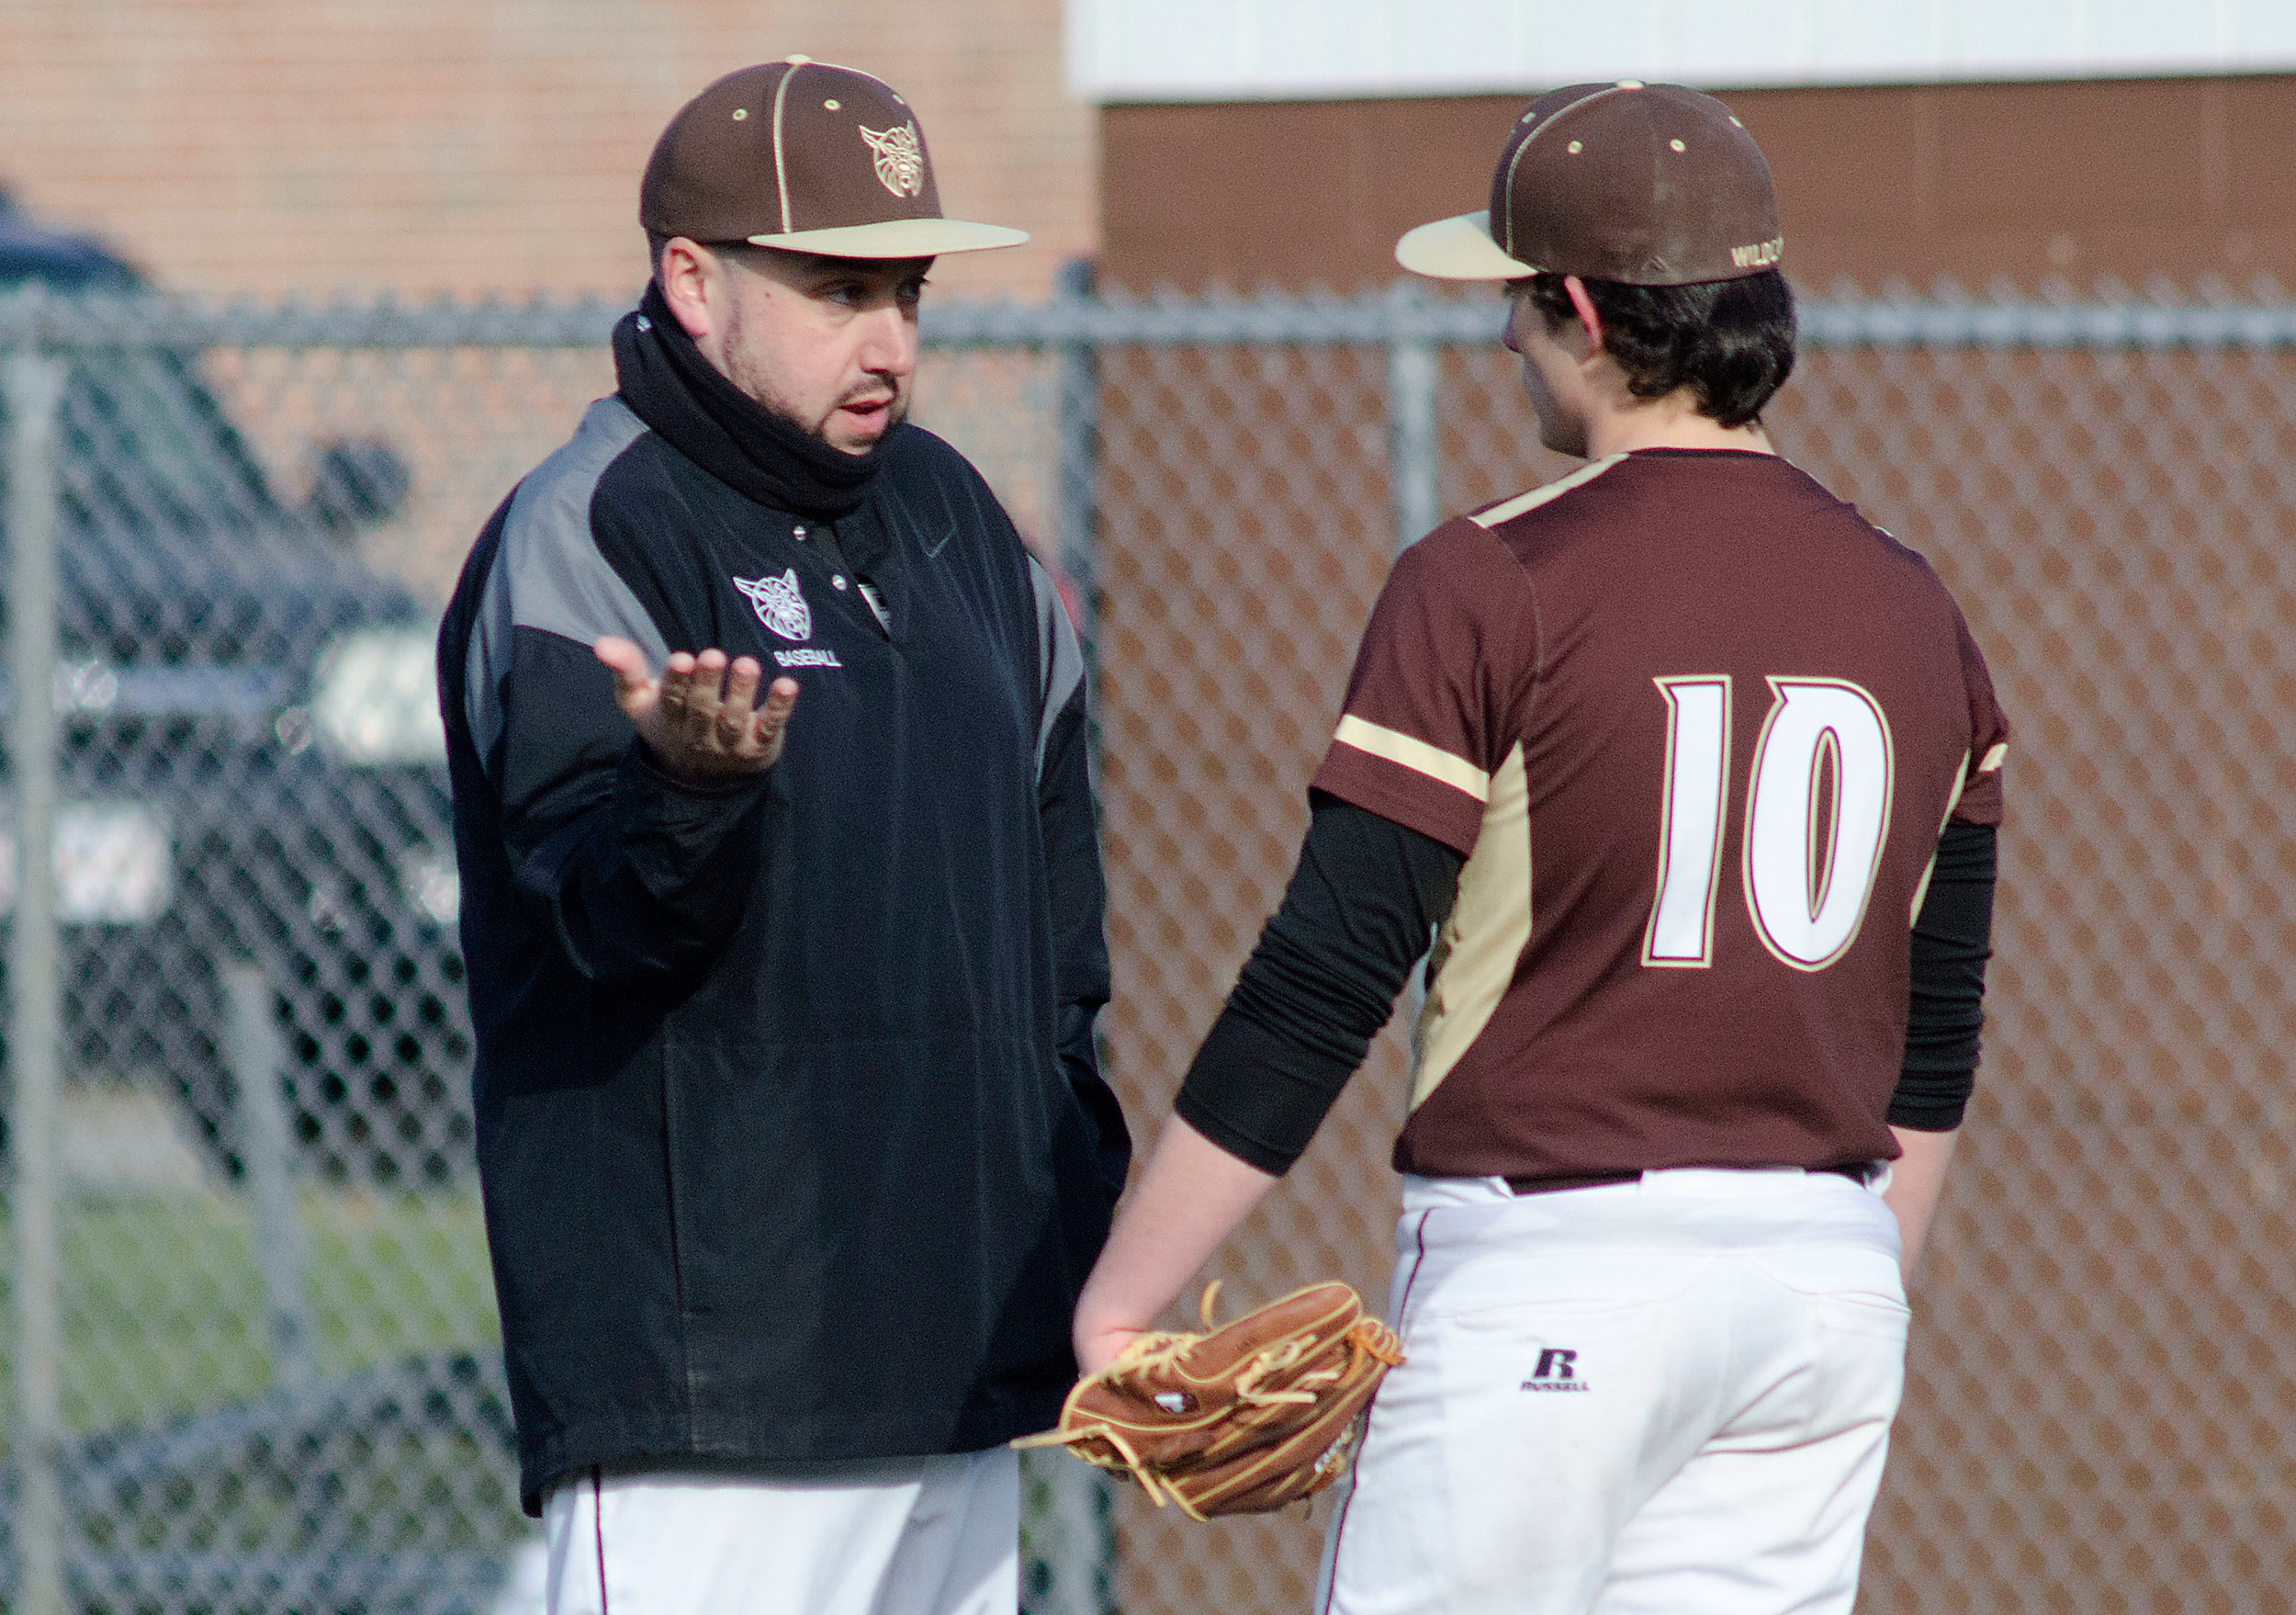 Head Coach Jason Pacheco talks to relief pitcher Ethan Carreiro during a time out.